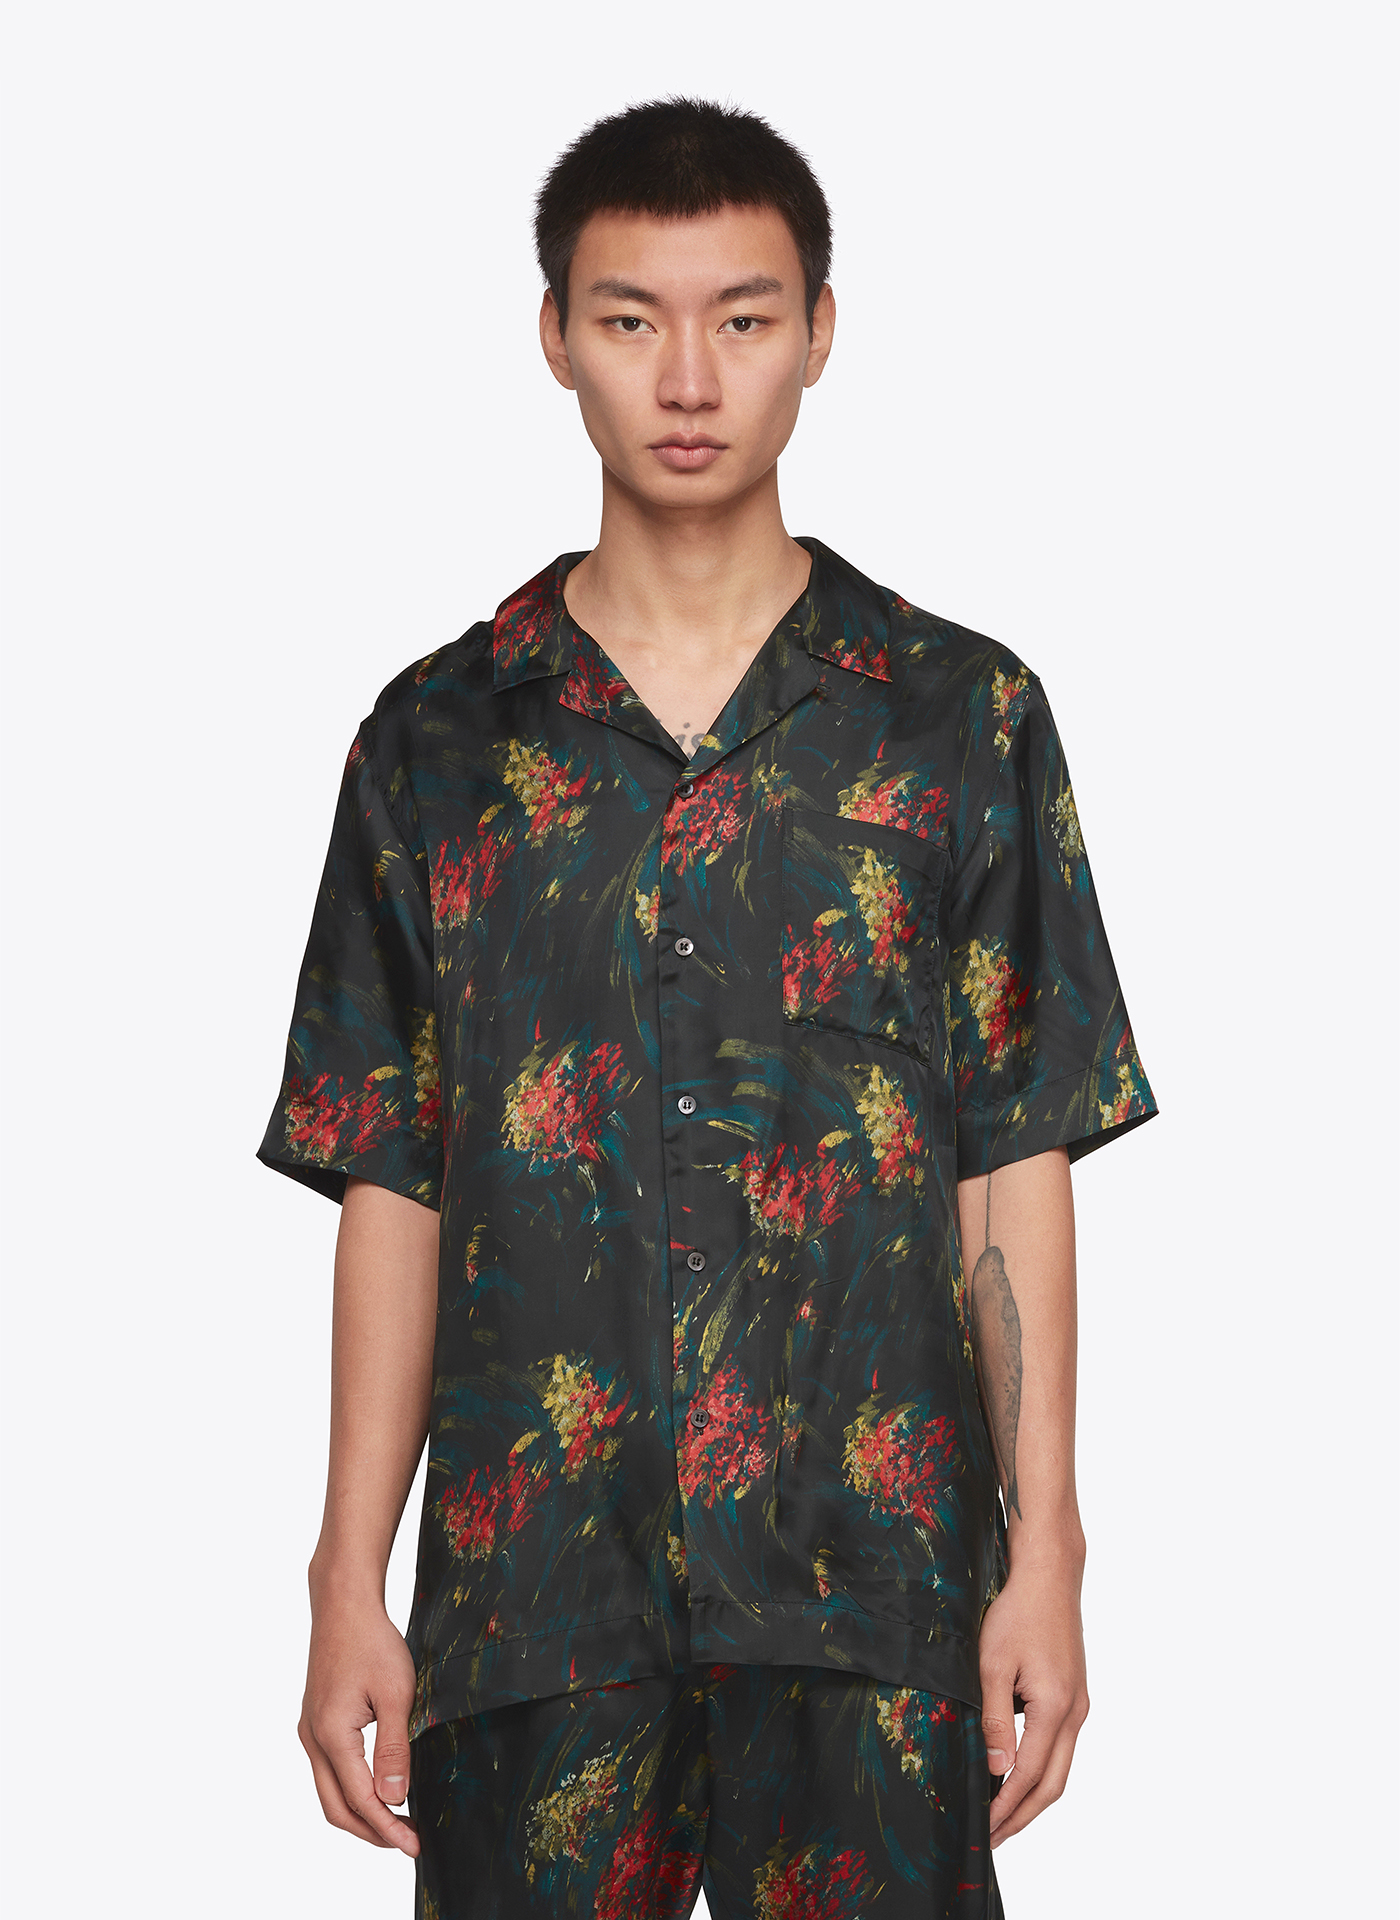 t-shirt with floral pattern worn by a menswear model